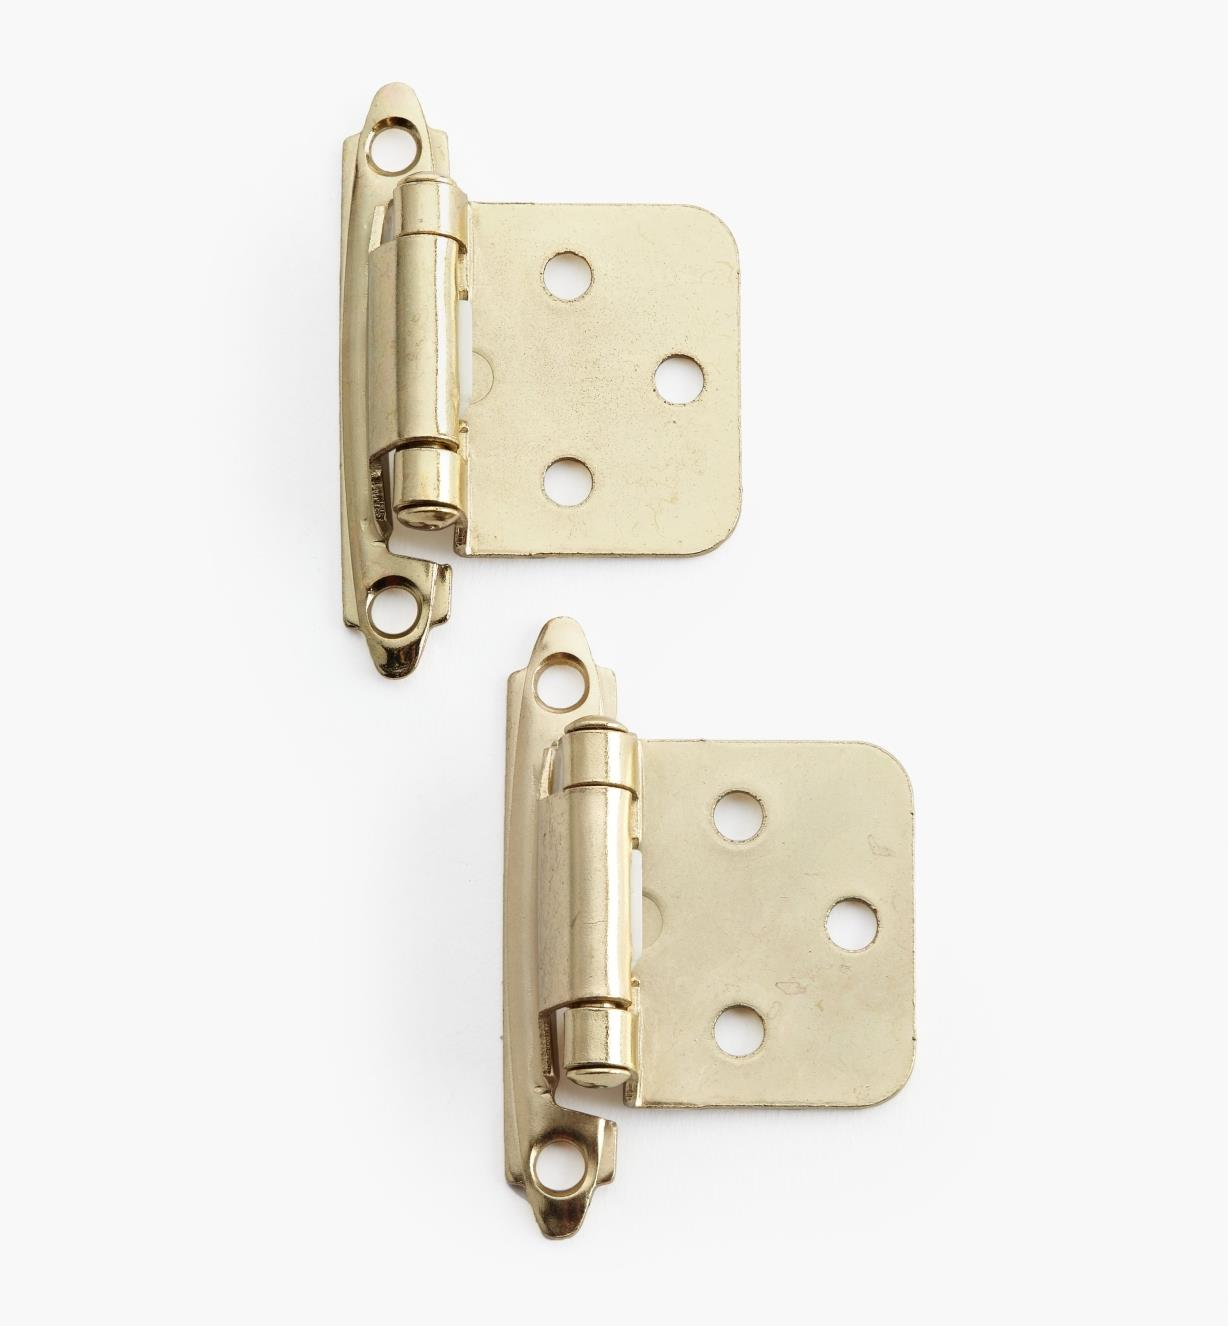 02H1342 - Brass Flush-Mount Self-Closing Hinges, pair